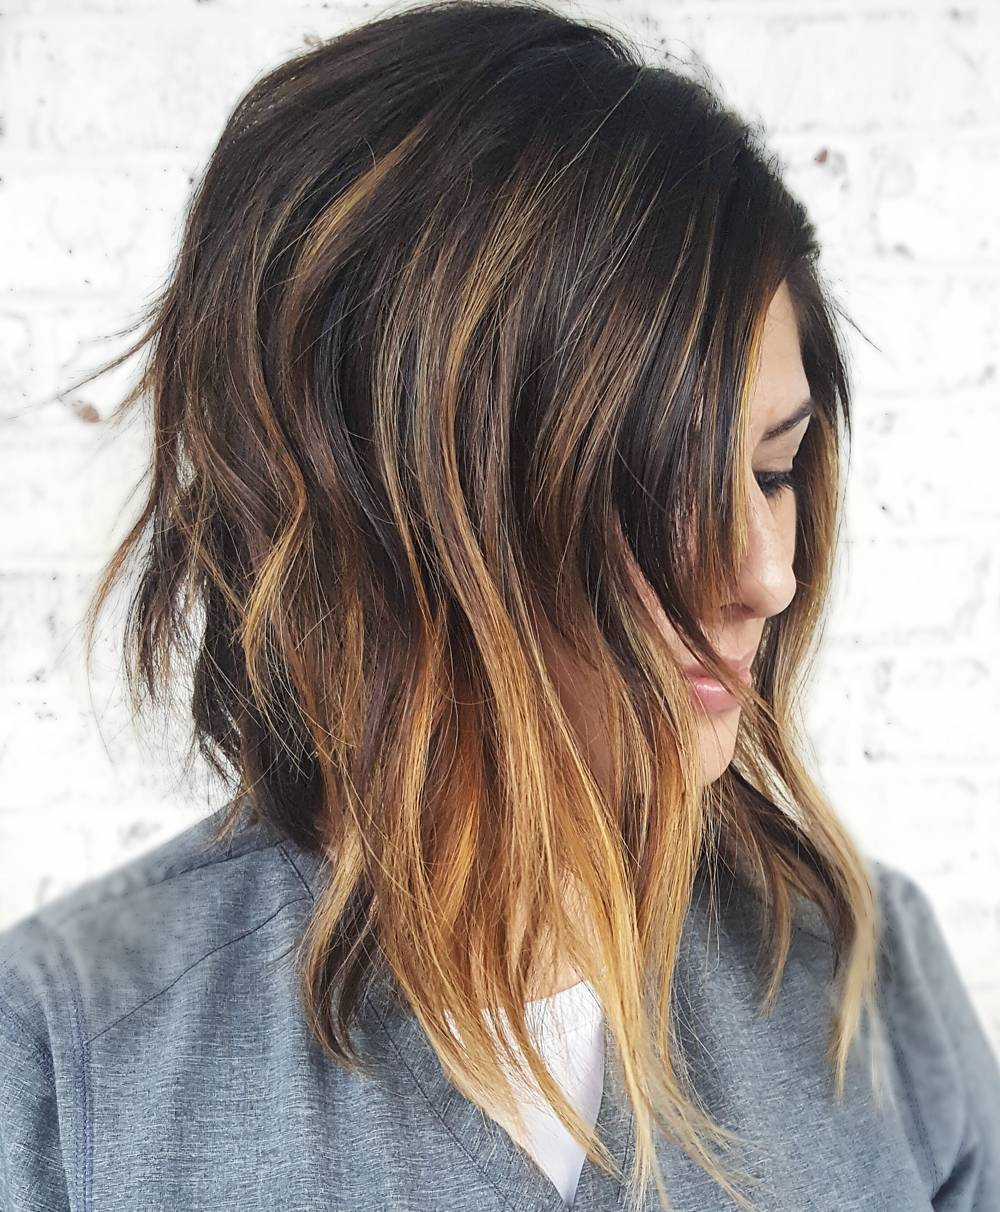 Edgy A-Line Haircut for Women with Thick Hair